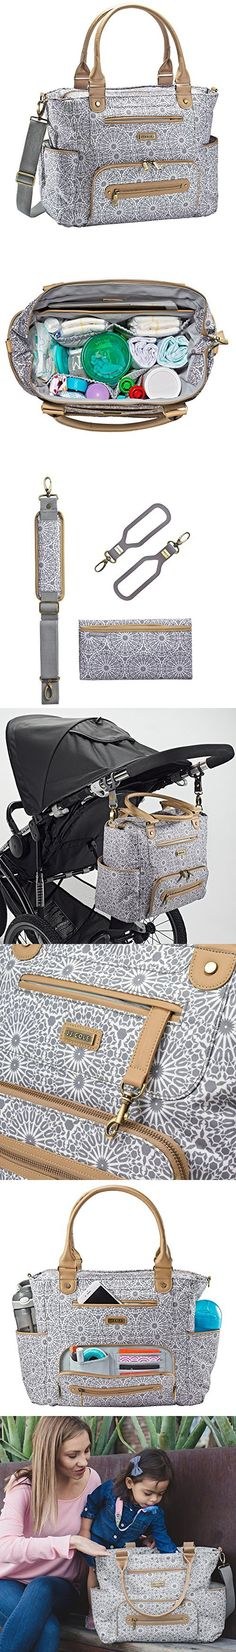 JJ Cole Papago Baby//Toddler Nappy//Diaper Backpack//Bag w//Changing Mat//Pad Grey